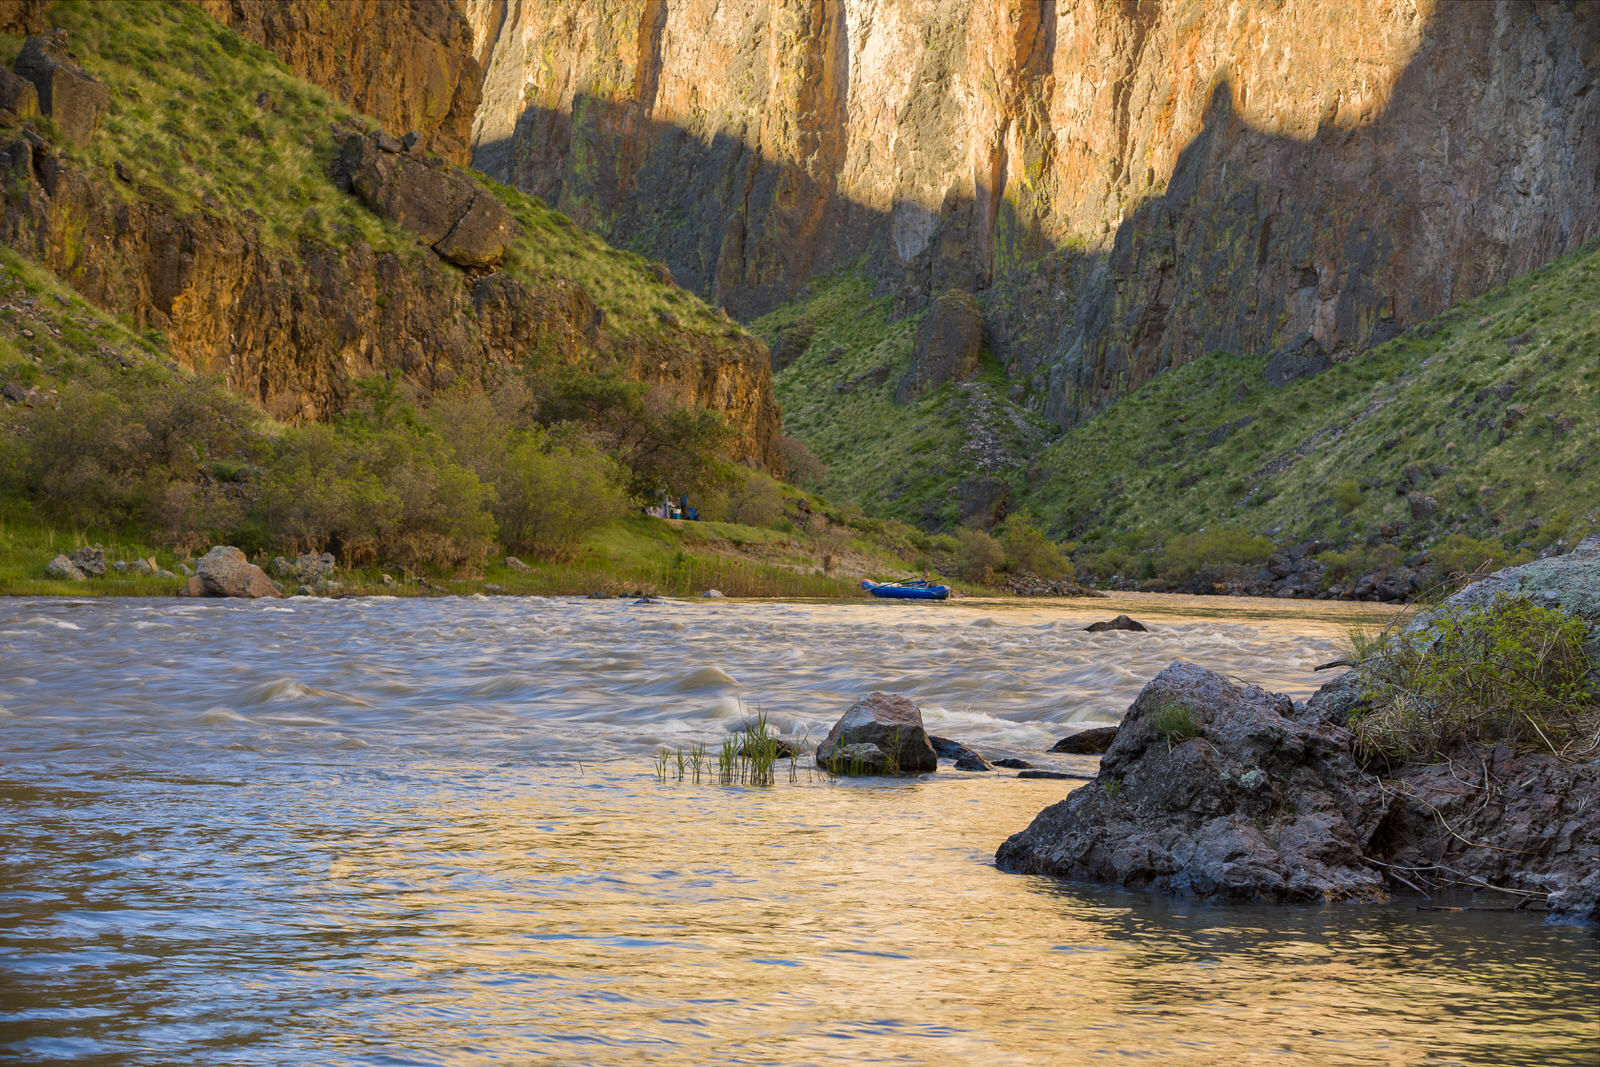 Morning light at Cliffside camp on the Owyhee River